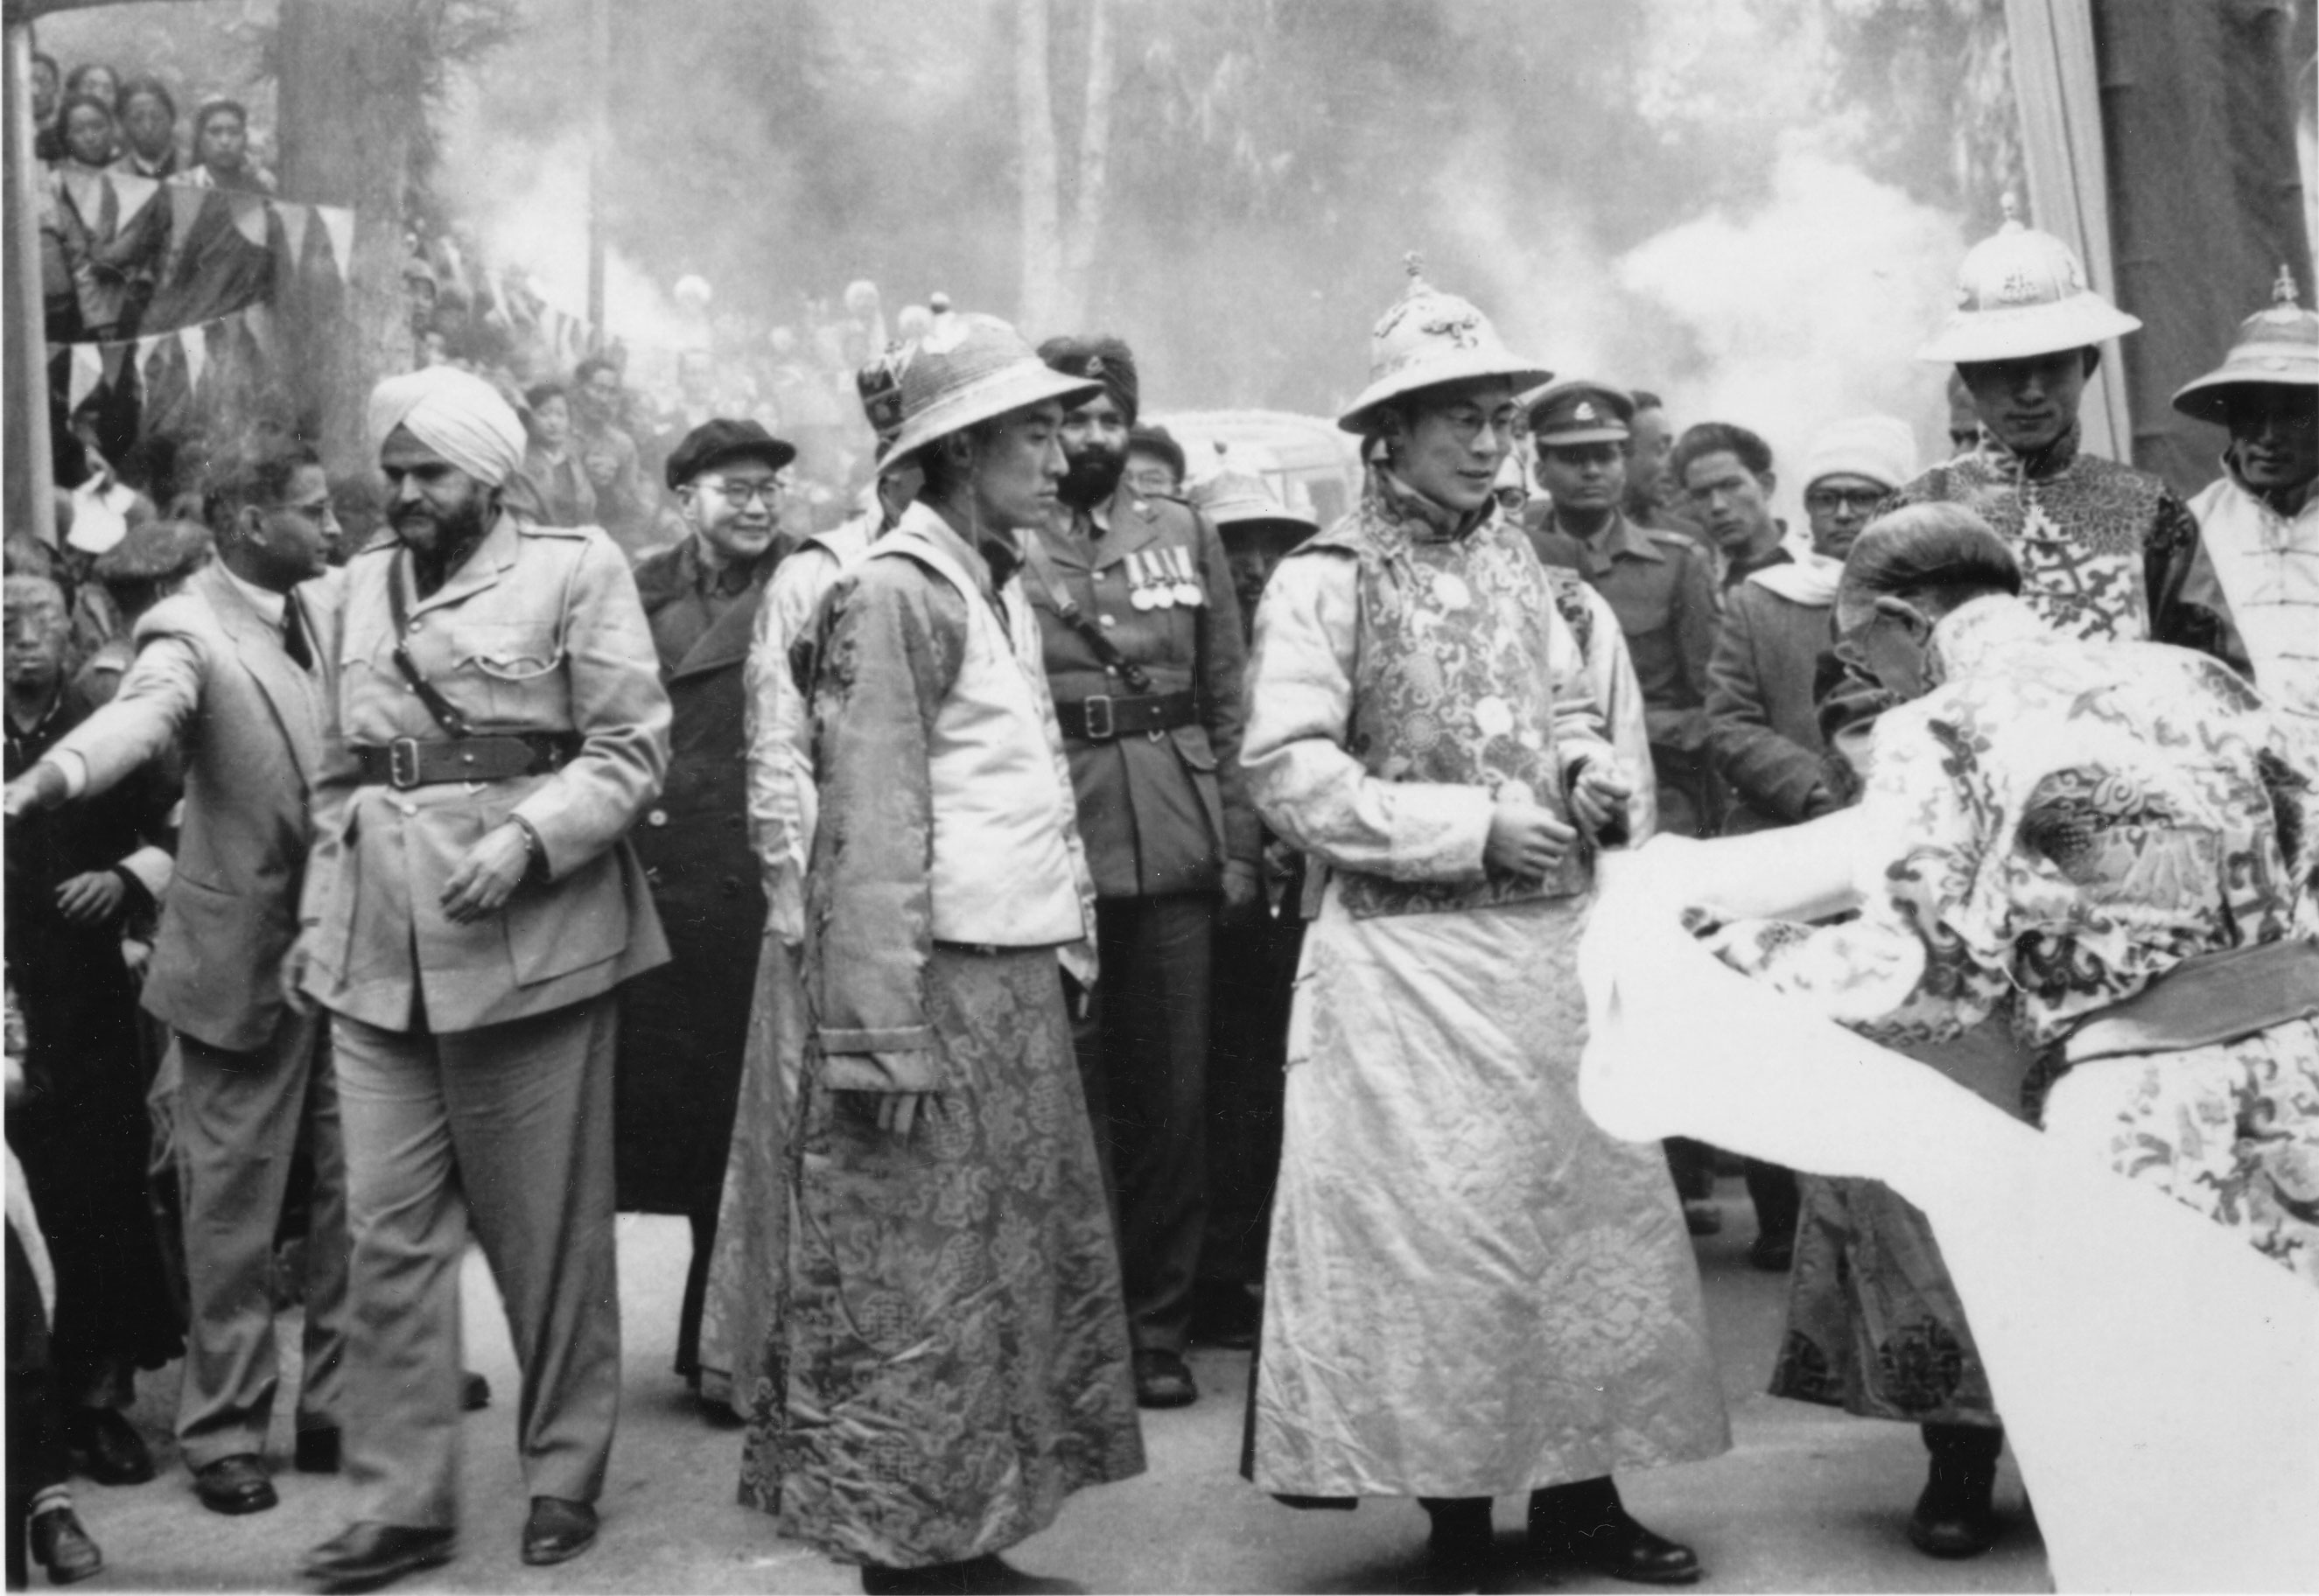 His Holiness at age 21 being received by the Chogyal of Sikkim, Gangtok, India in 1956